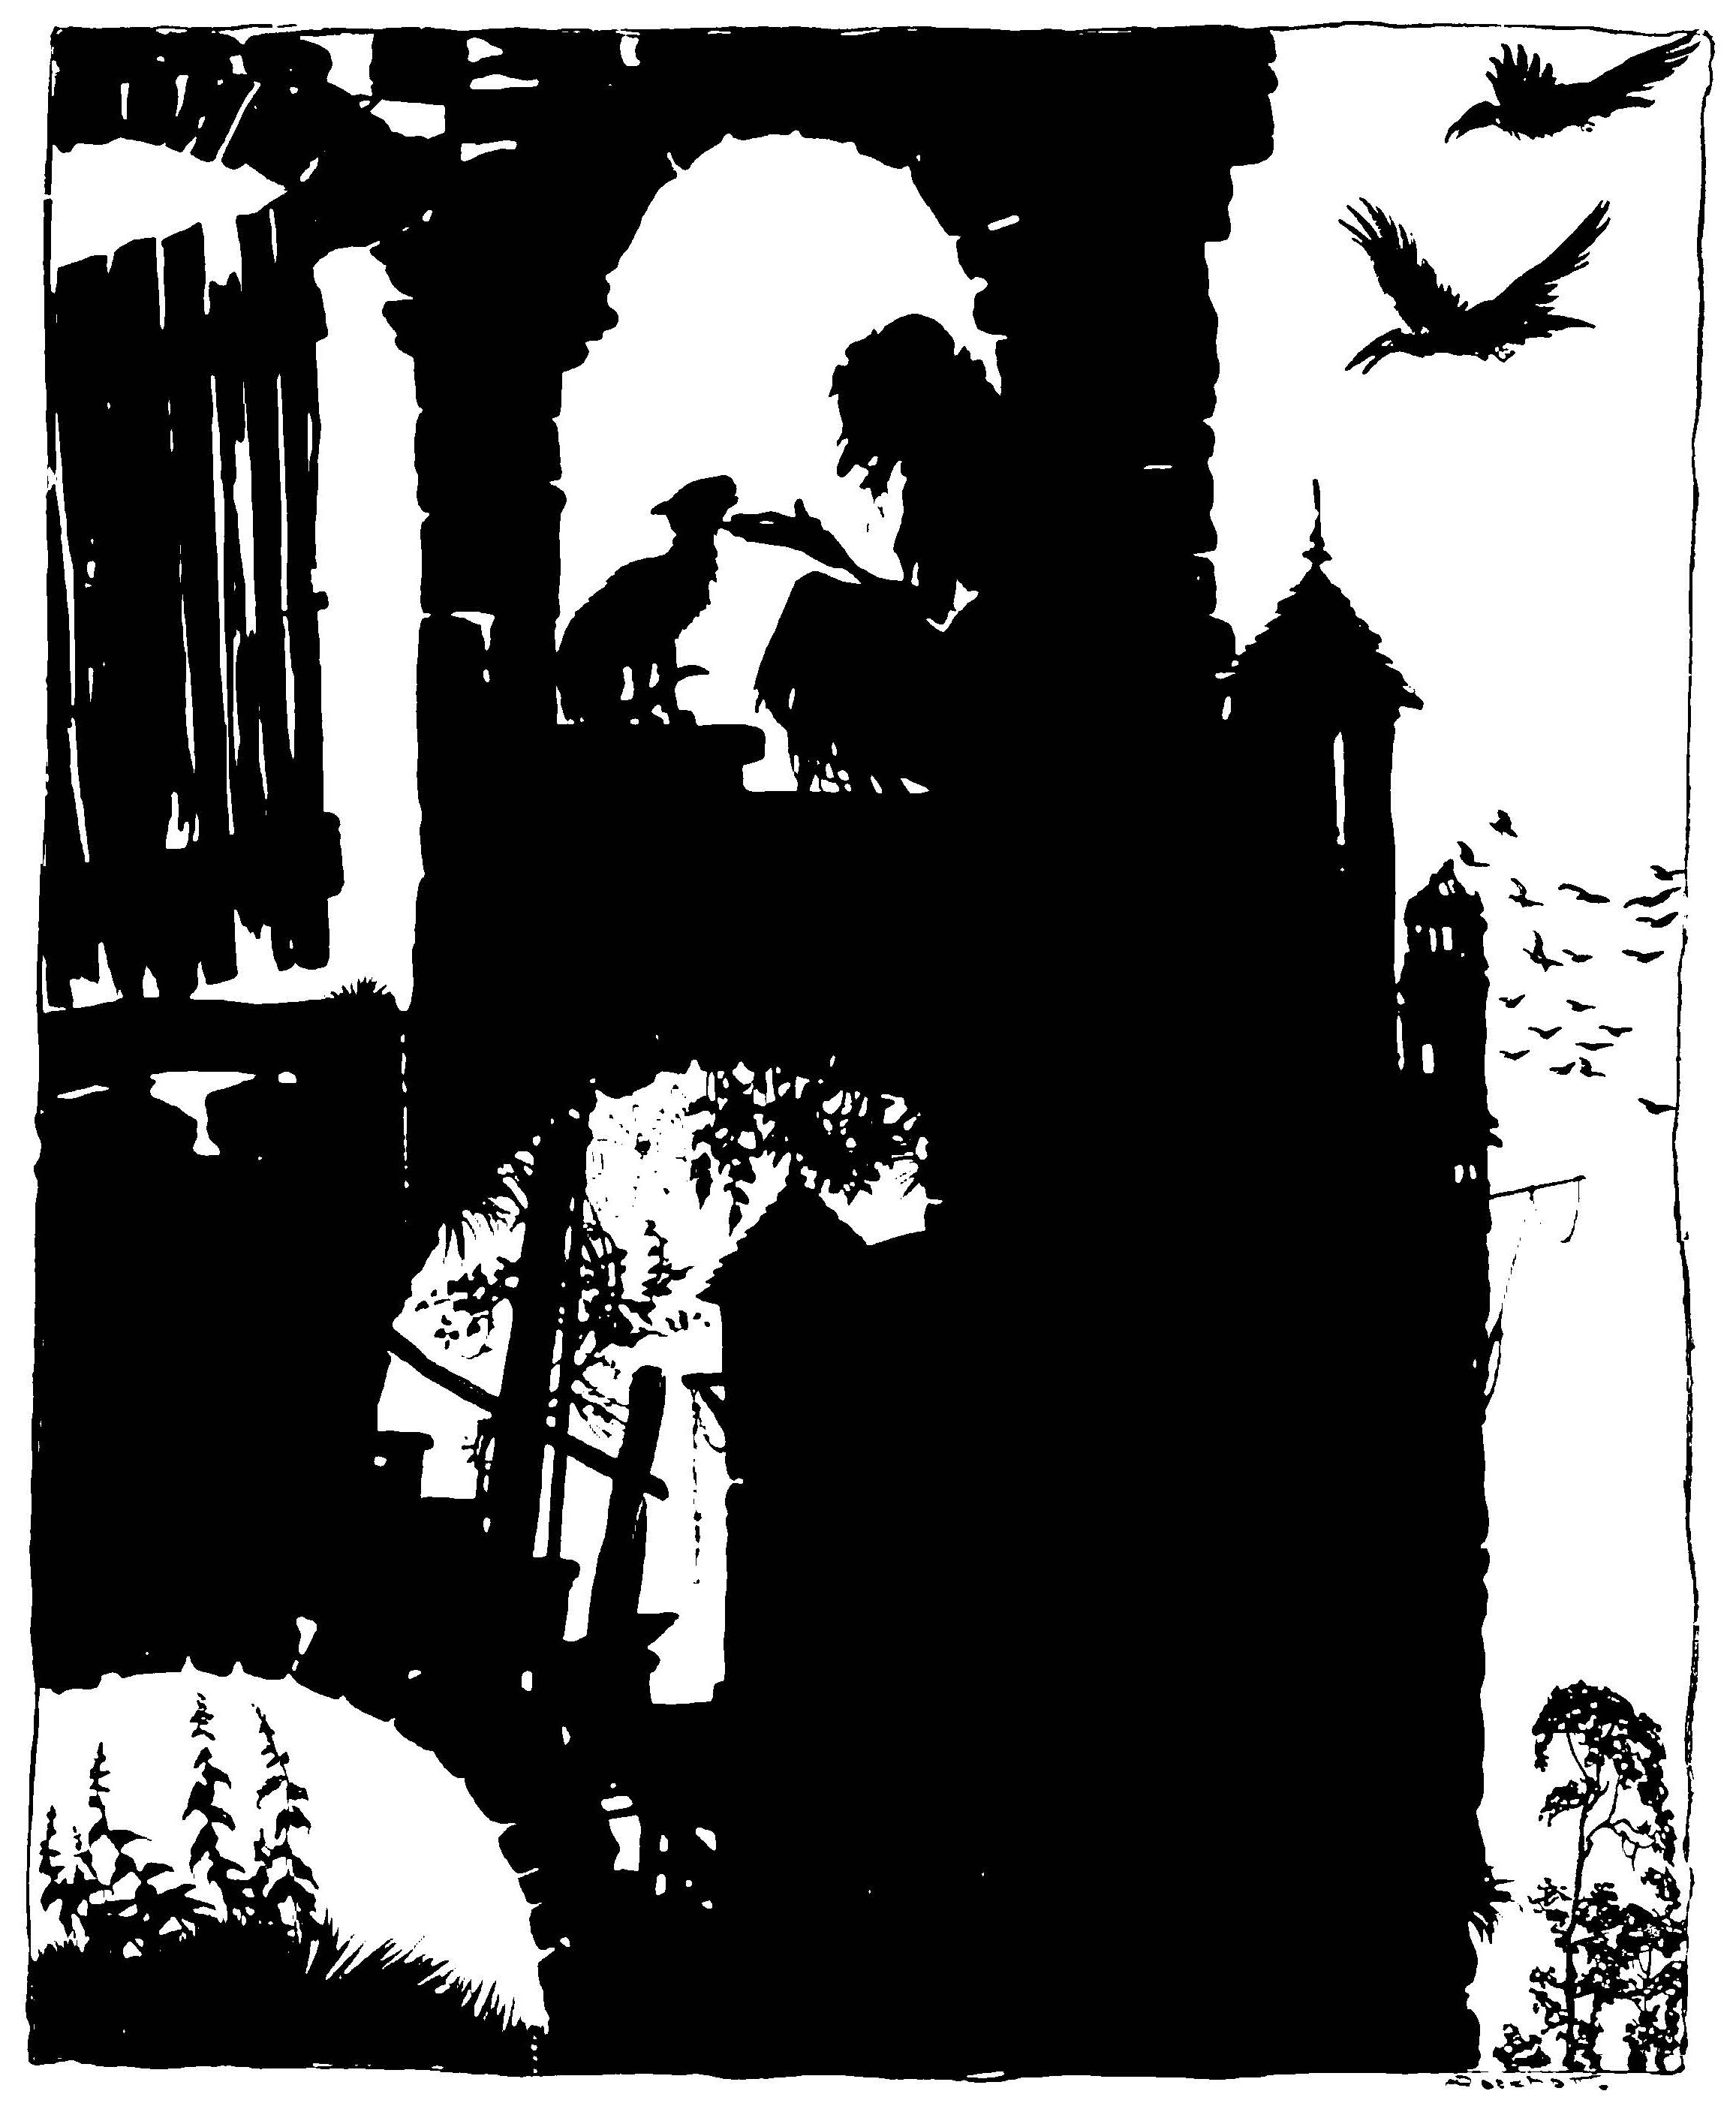 From The Sleeping Beauty by Arthur Rackham, 1920.